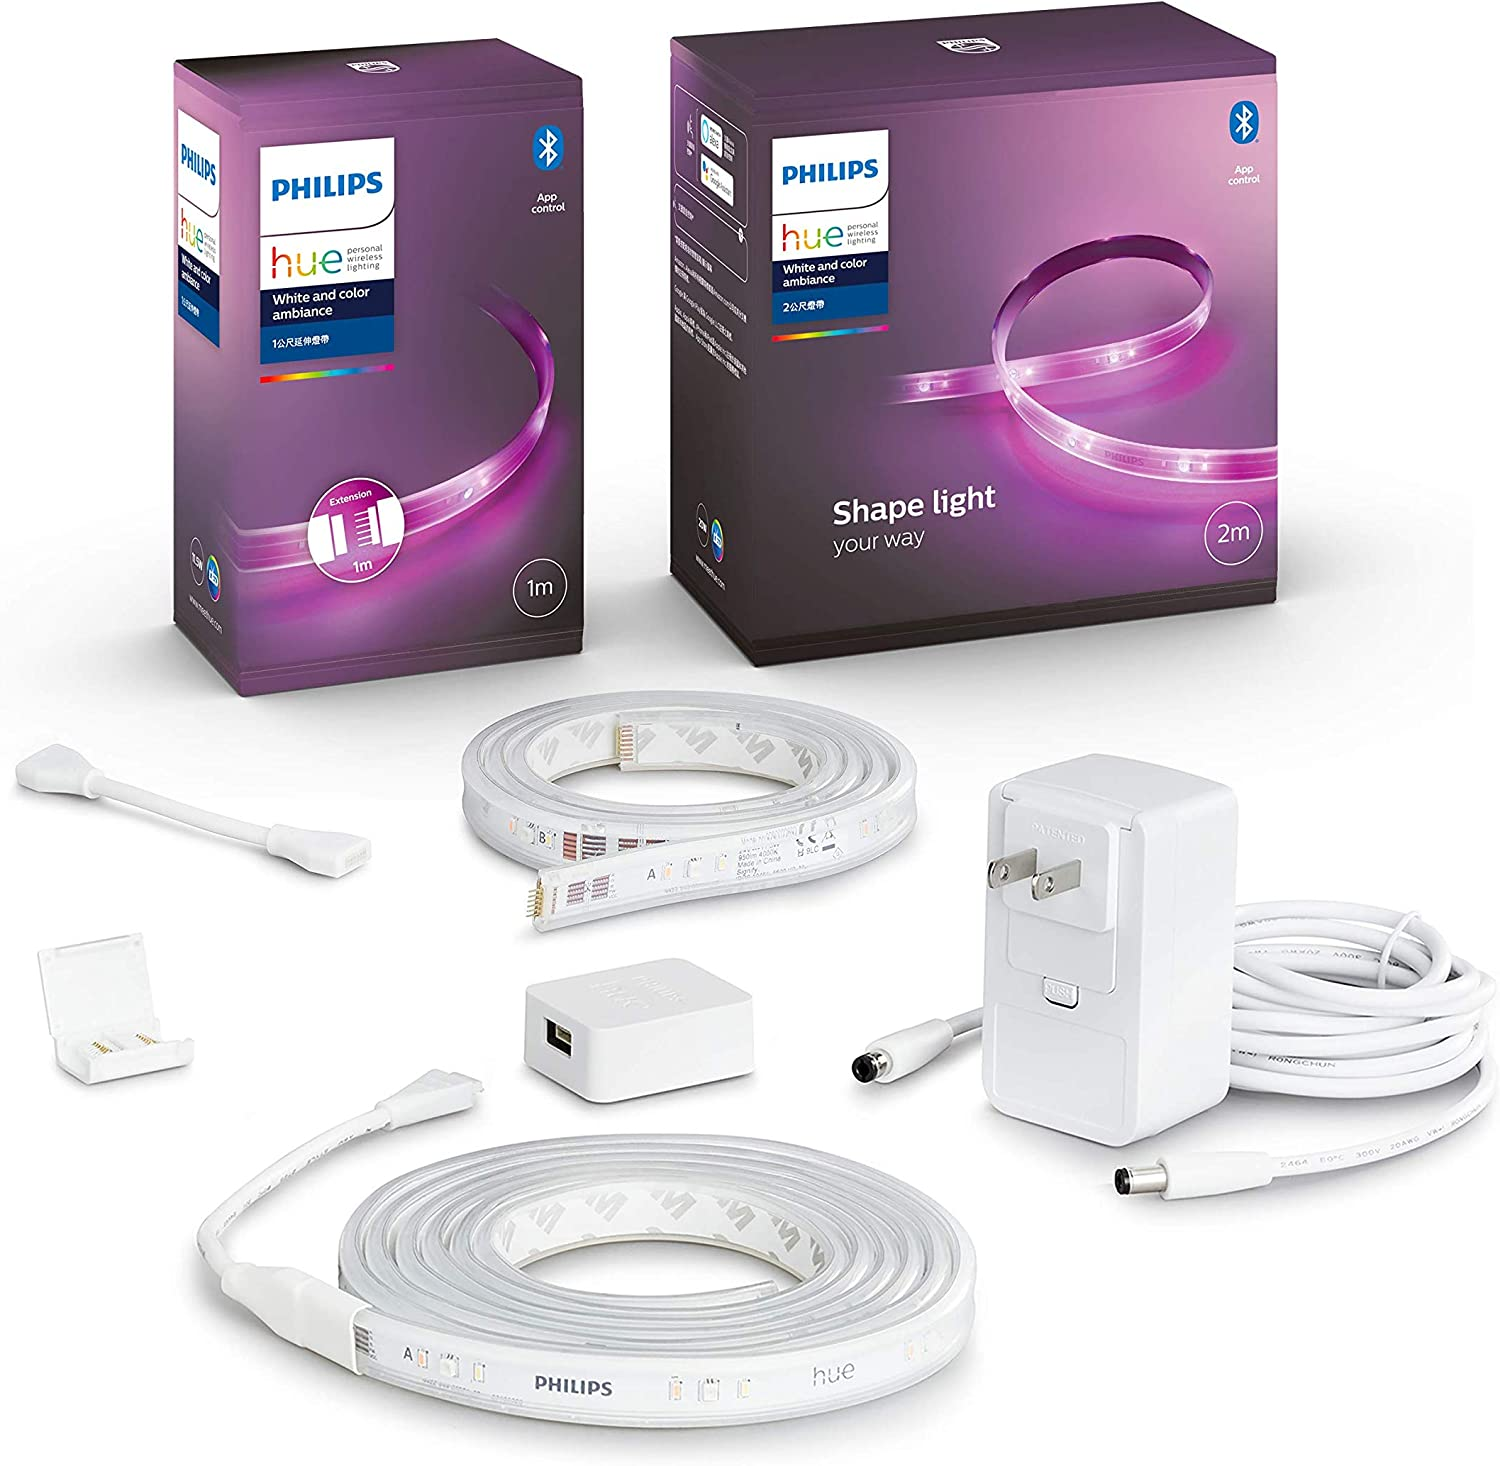 Philips Hue 555326 Phlips Hue BLE Lightstrip LED Light strip, 1m / 3 ft Extension, White w/Hue 555334 BLE Lightstrip LED Light strip, 2m / 6ft Base Kit, White